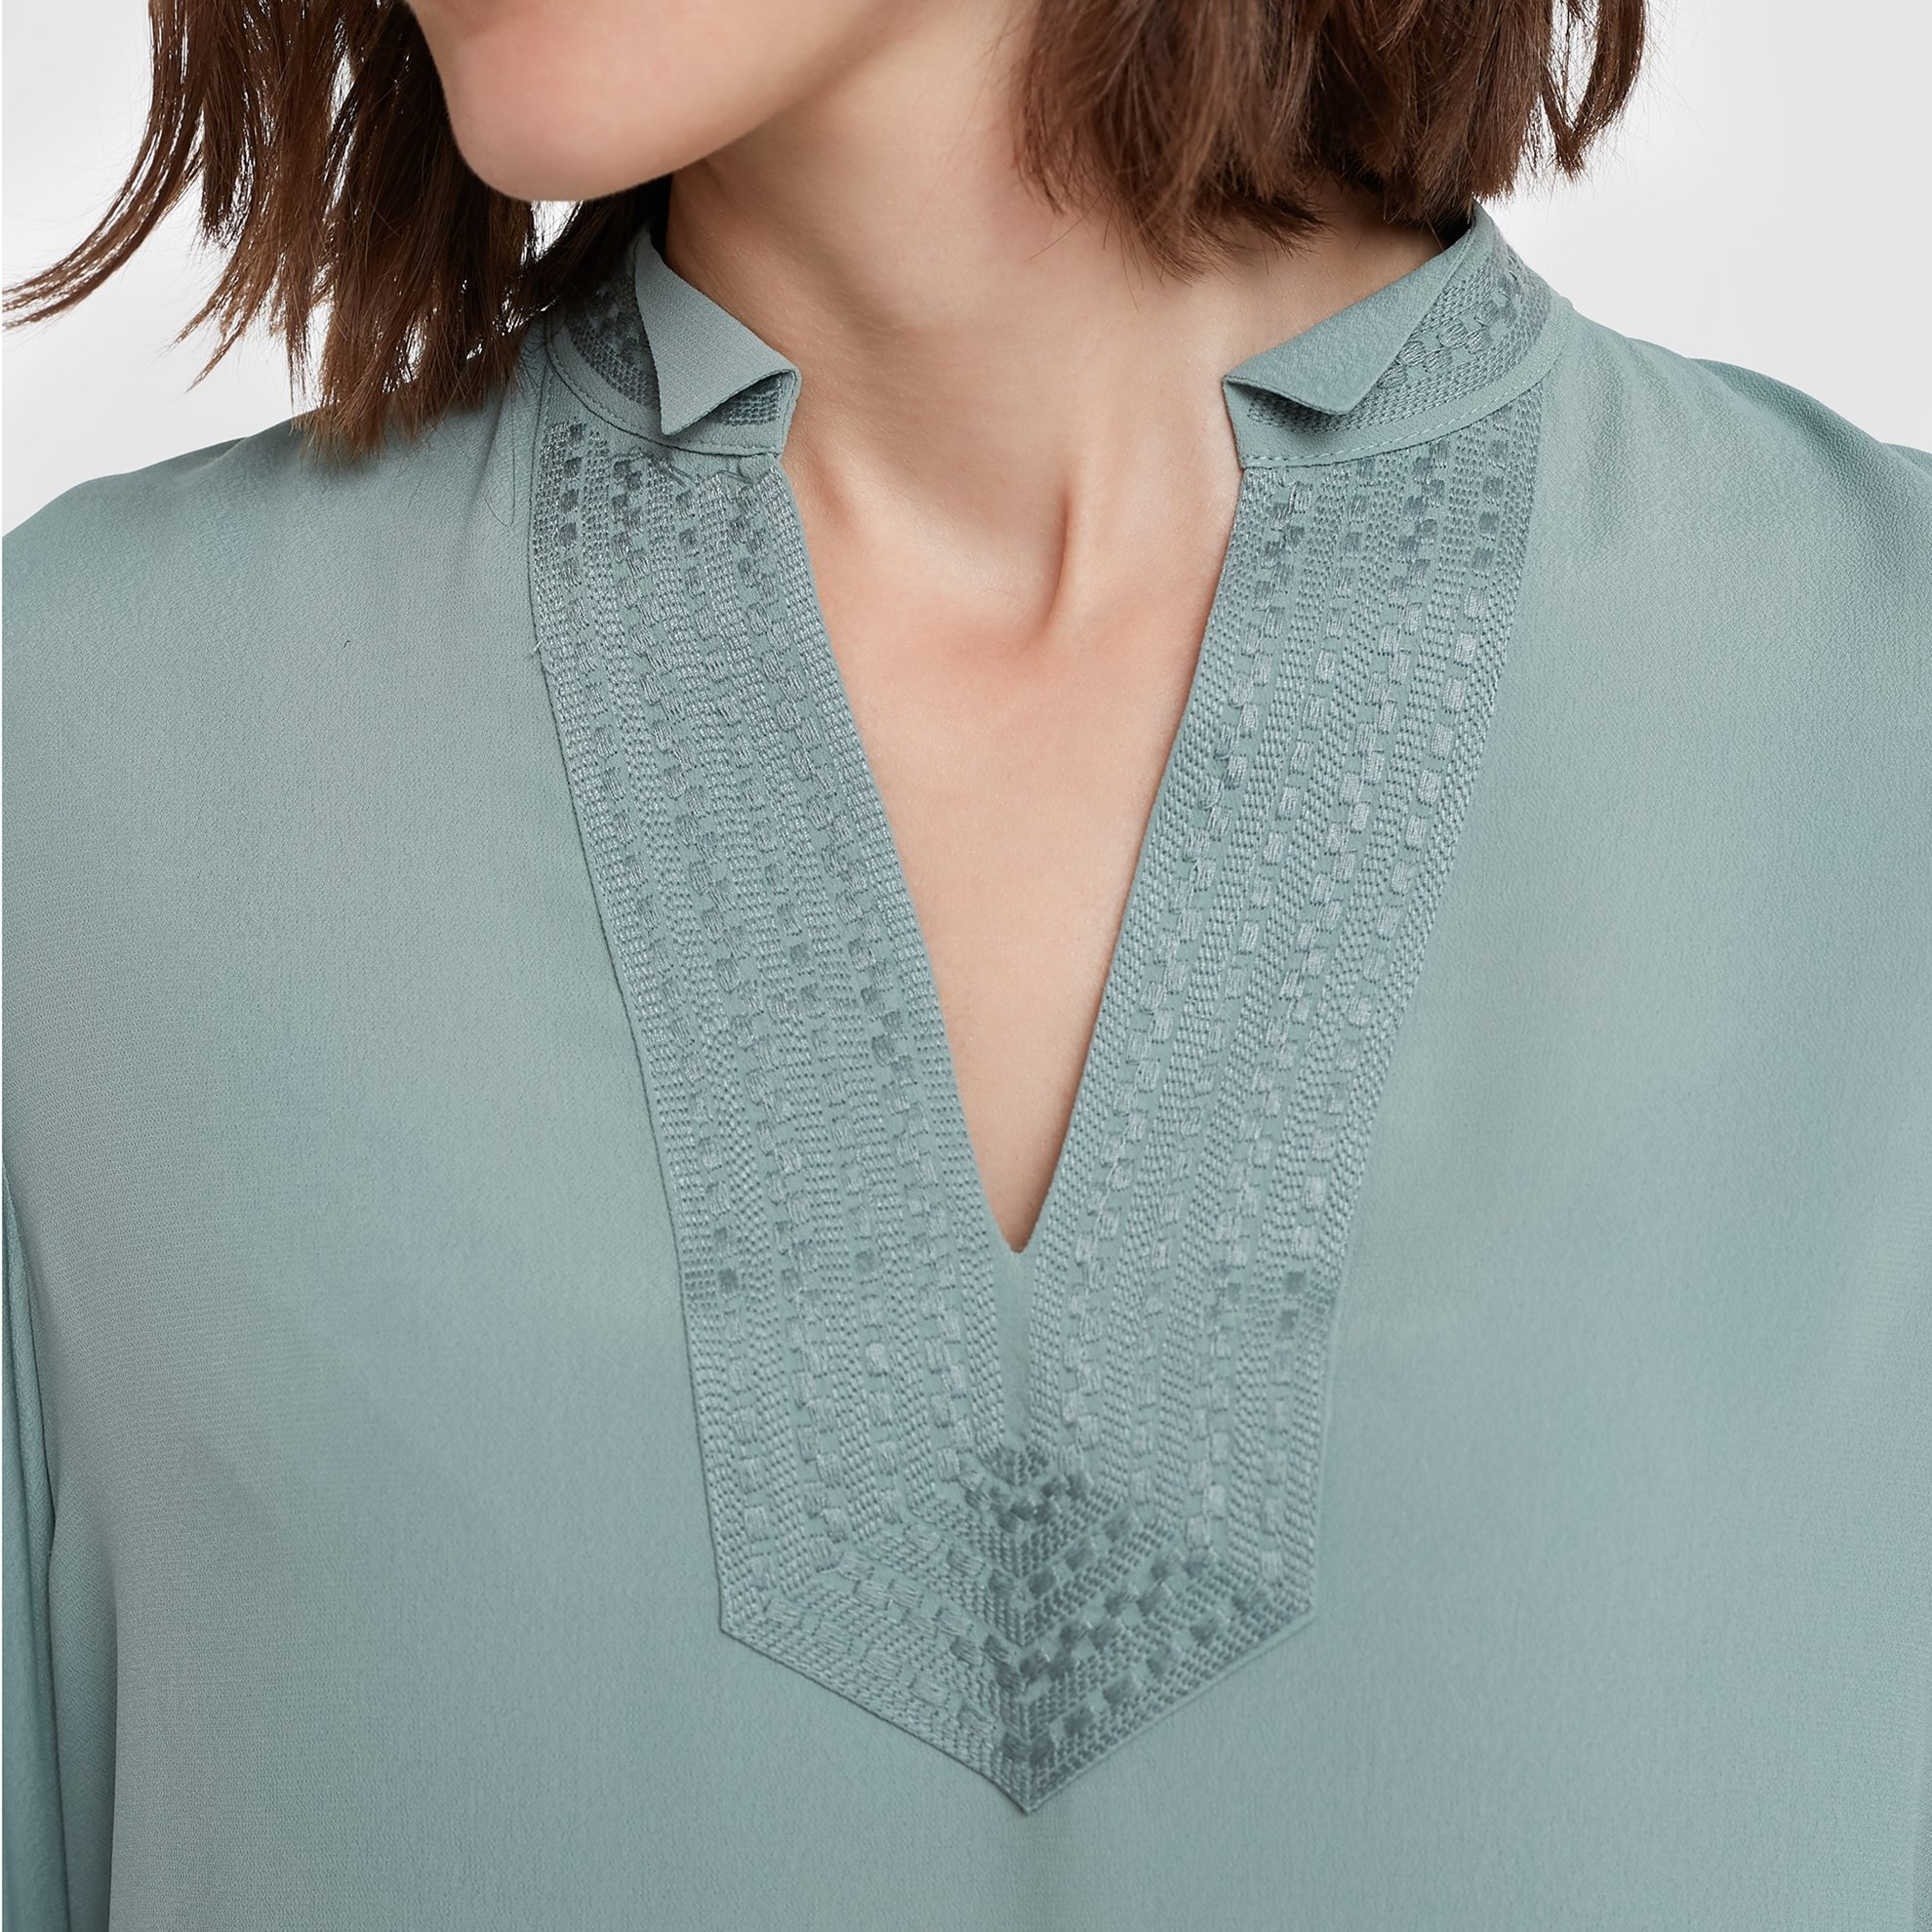 Embroidery Detailed Blouse